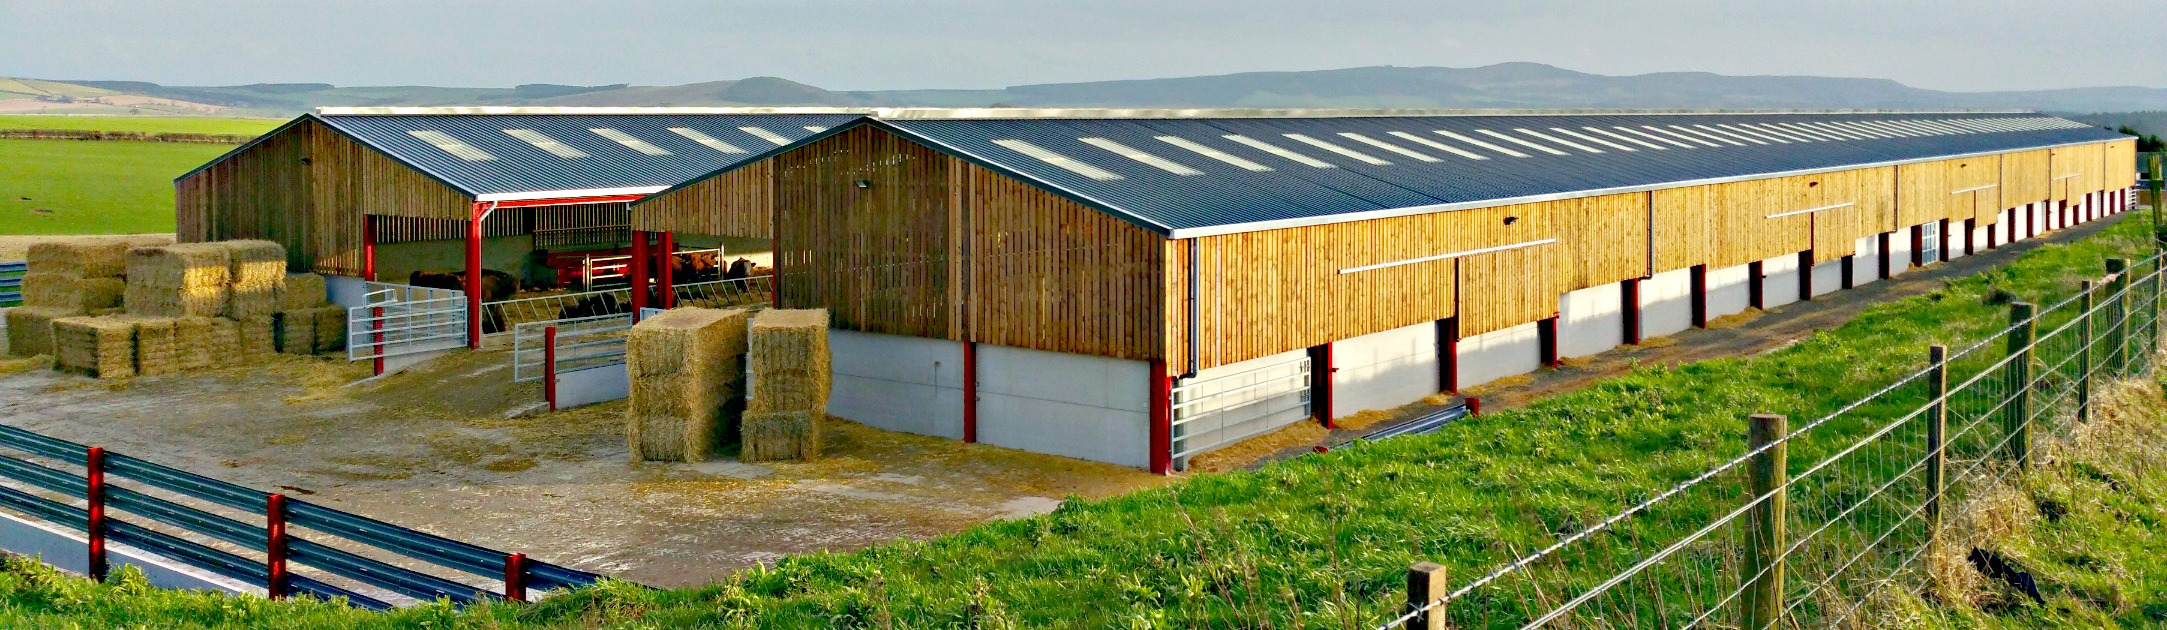 Glendale Engineering (Milfield) Ltd - Lilburn Estates Cattle Building